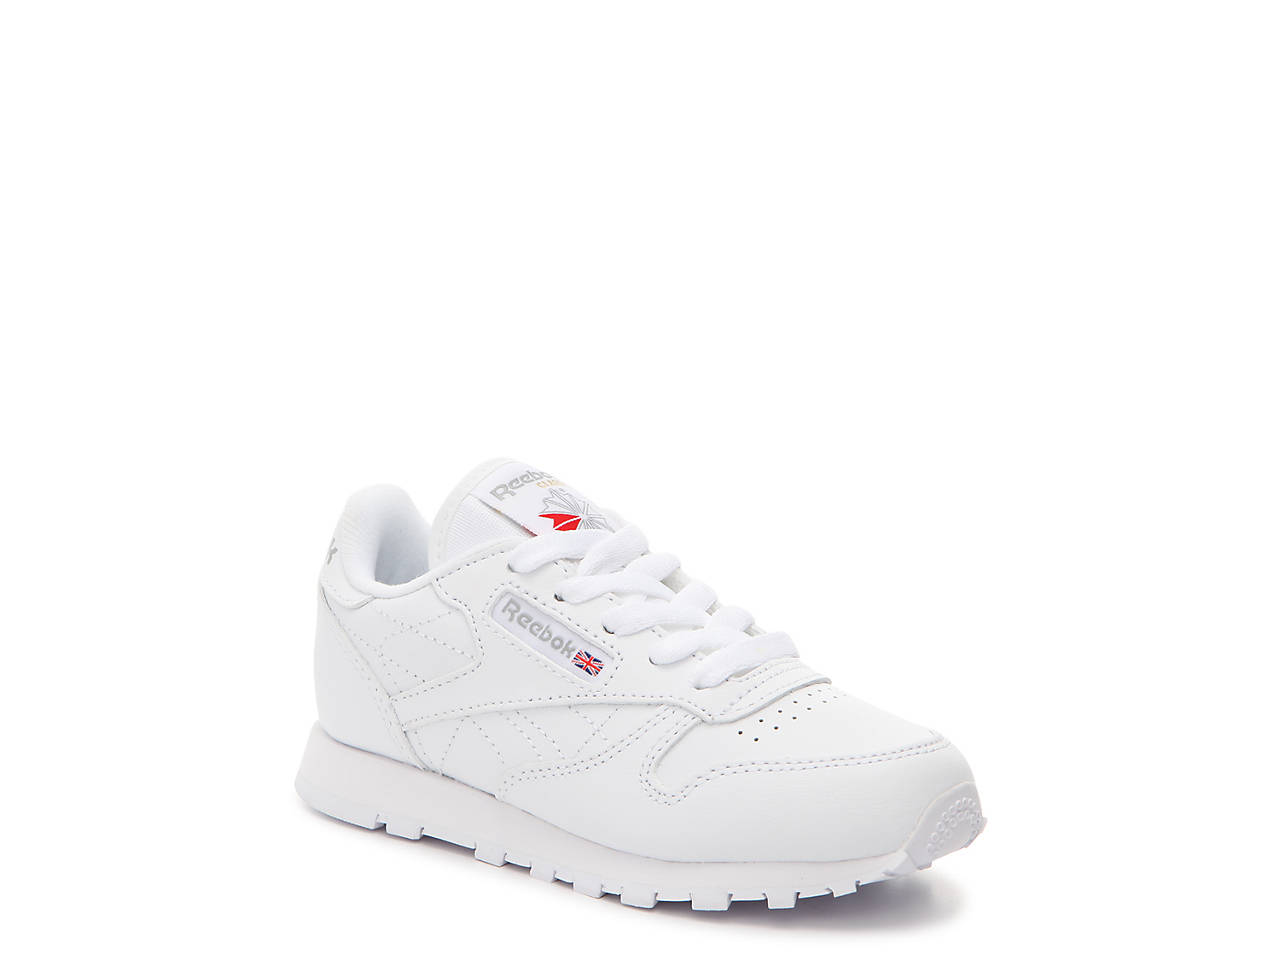 113d4efce3b Reebok Classic Leather Toddler   Youth Sneaker Kids Shoes